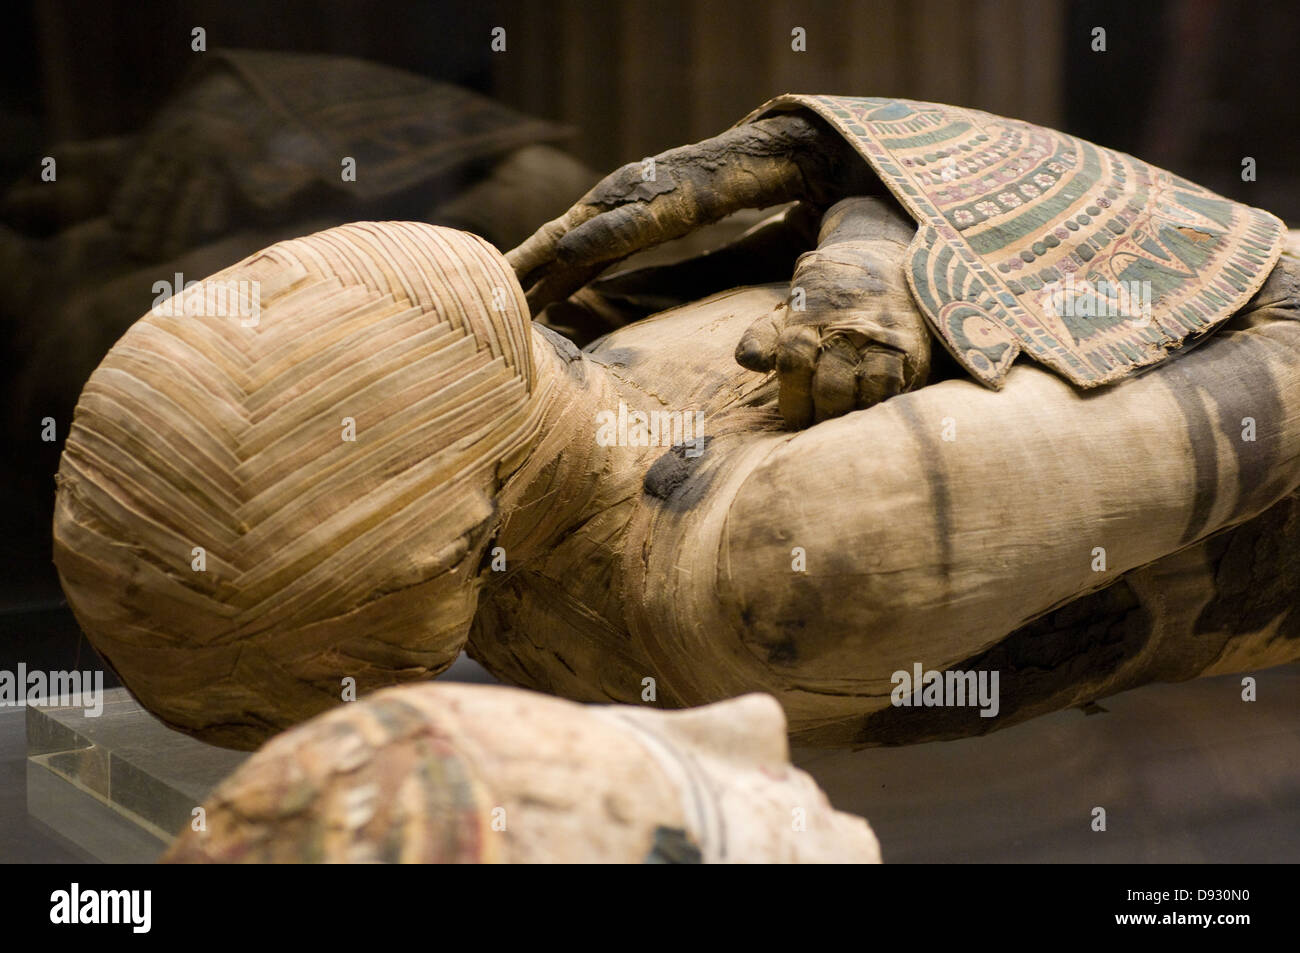 Pharaonic Egypt The mummy Embalming and funeral Louvre Museum Paris - Stock Image